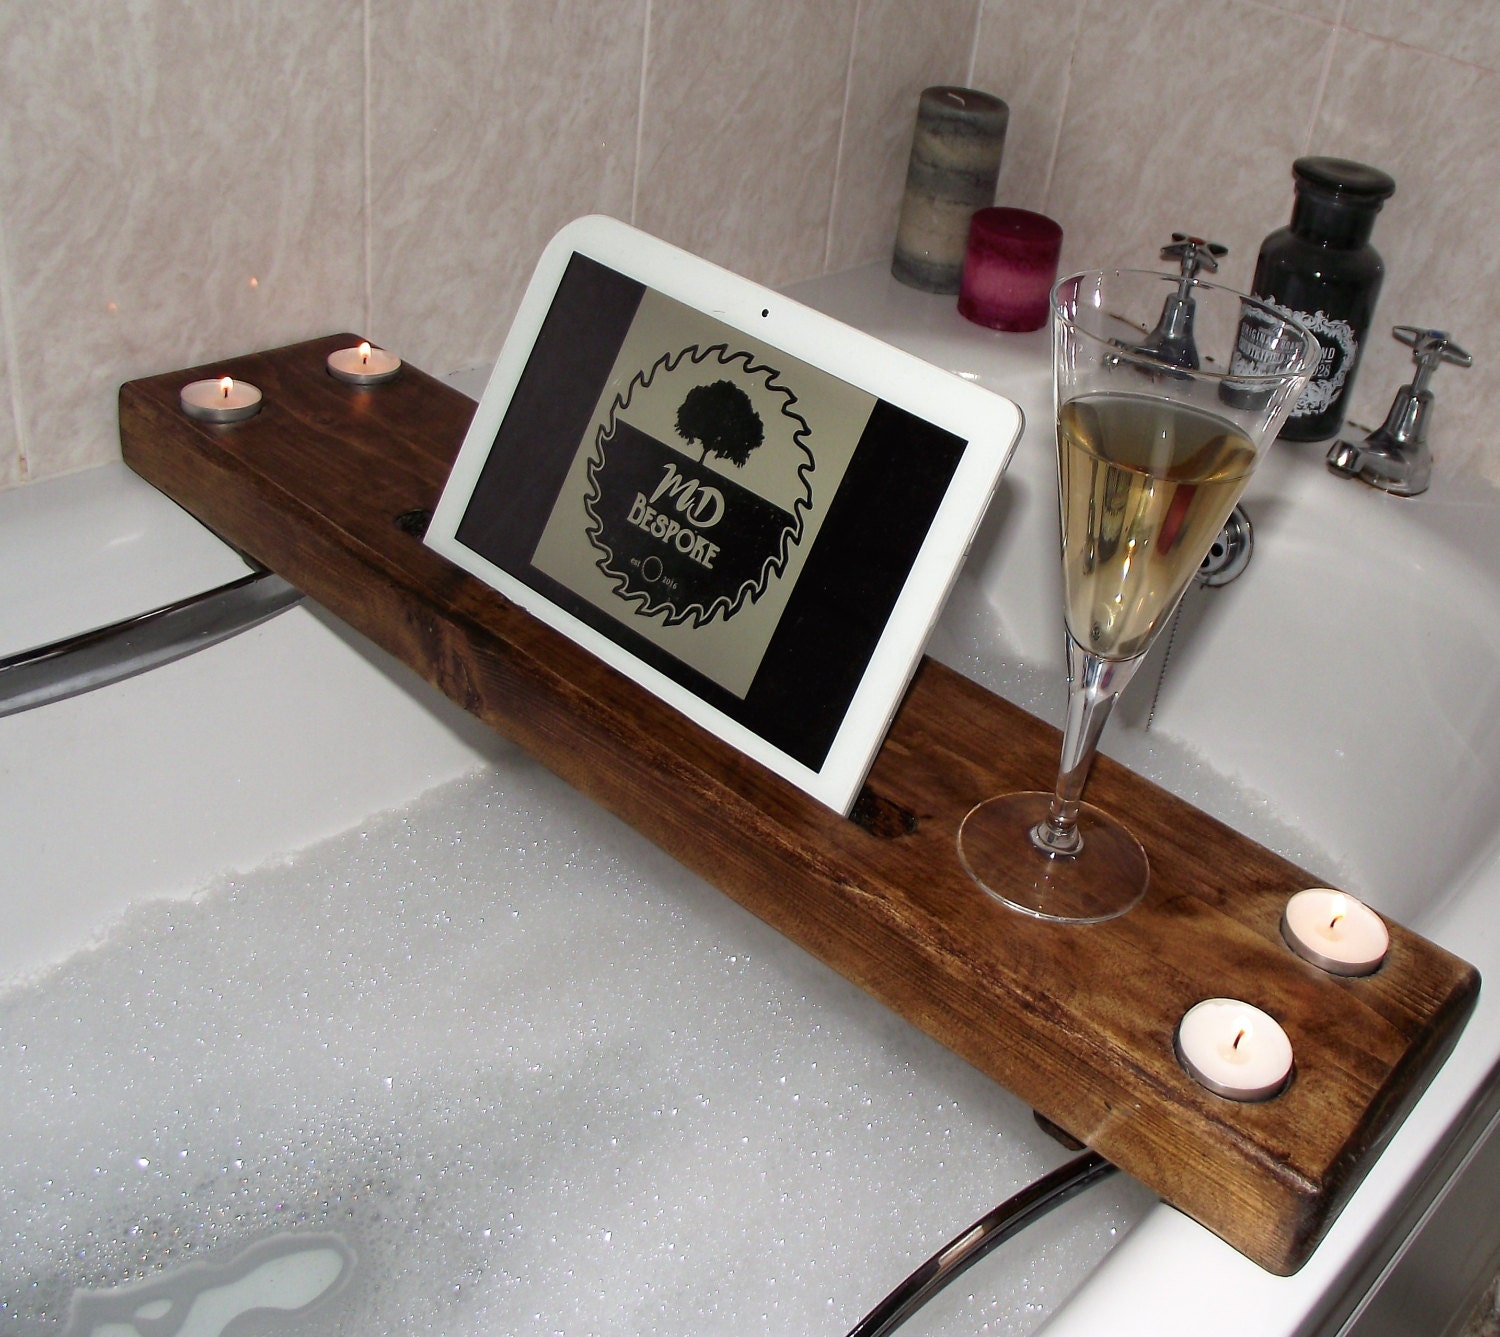 Wooden bath caddy wooden bath tray bathtub caddy bathtub for Bathroom tray